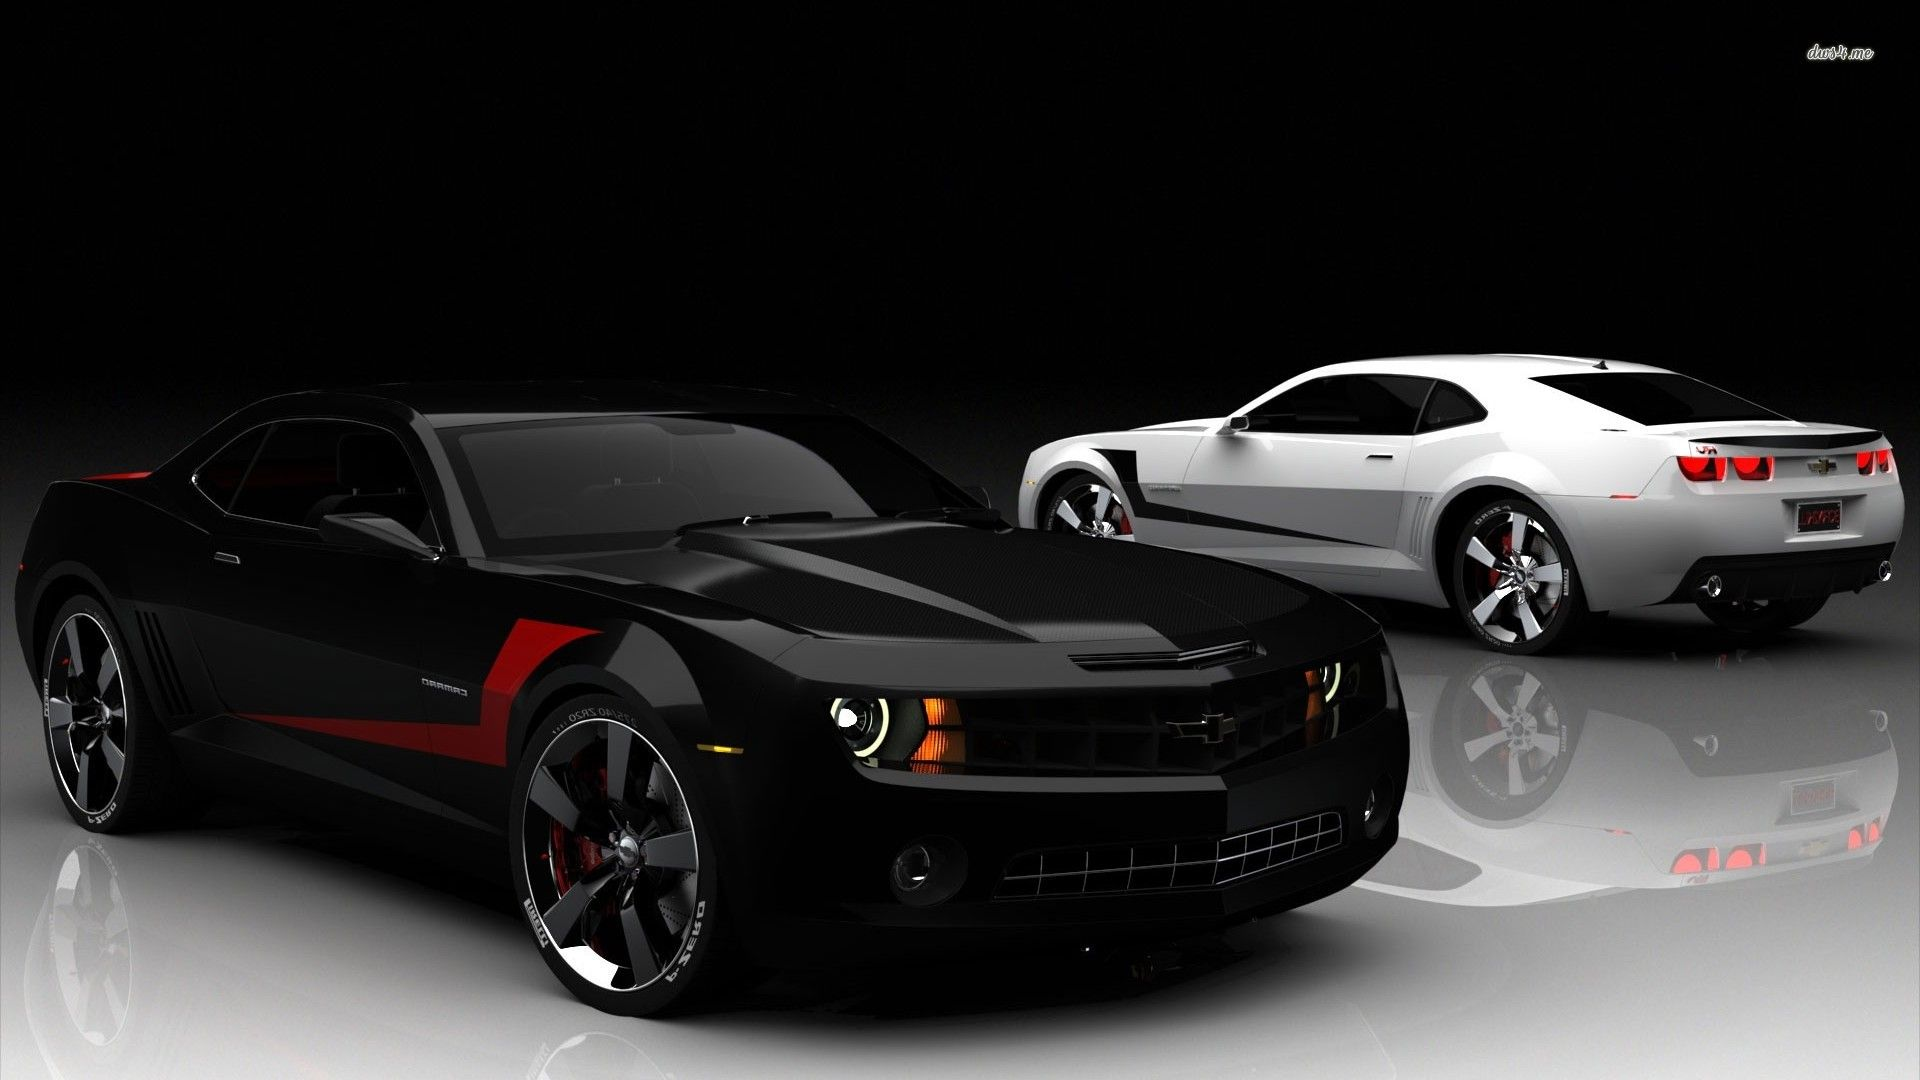 Download Black And White Chevrolet Camaro Car Wallpaper Full Hd